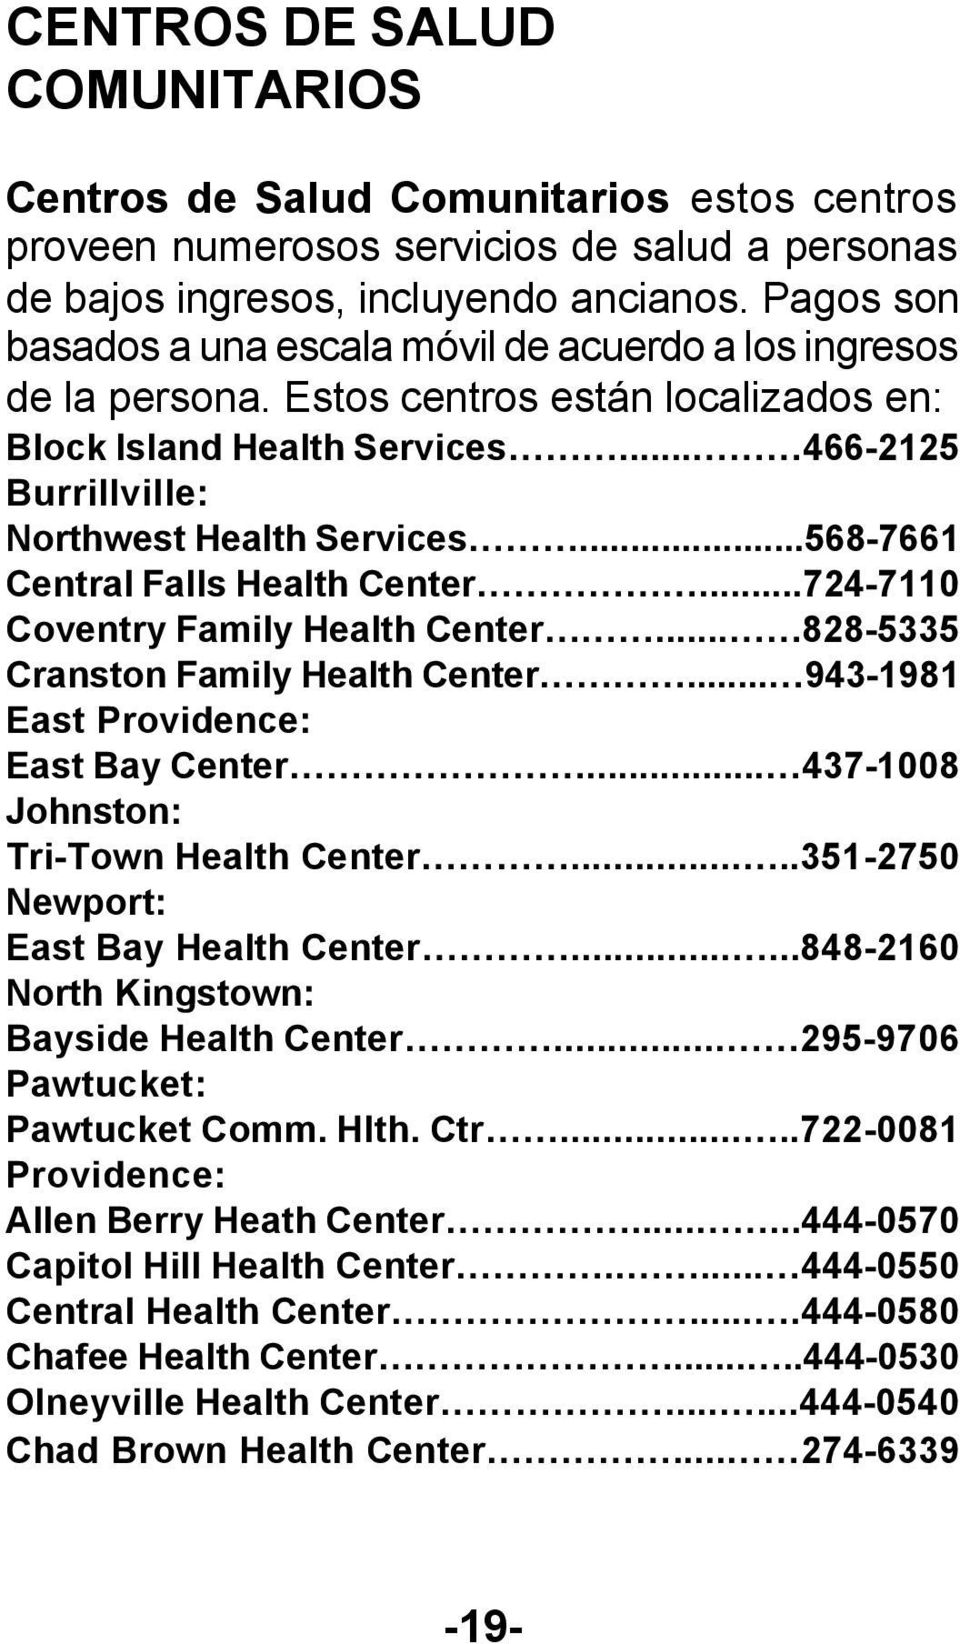 ..568-7661 Central Falls Health Center...724-7110 Coventry Family Health Center... 828-5335 Cranston Family Health Center... 943-1981 East Providence: East Bay Center.